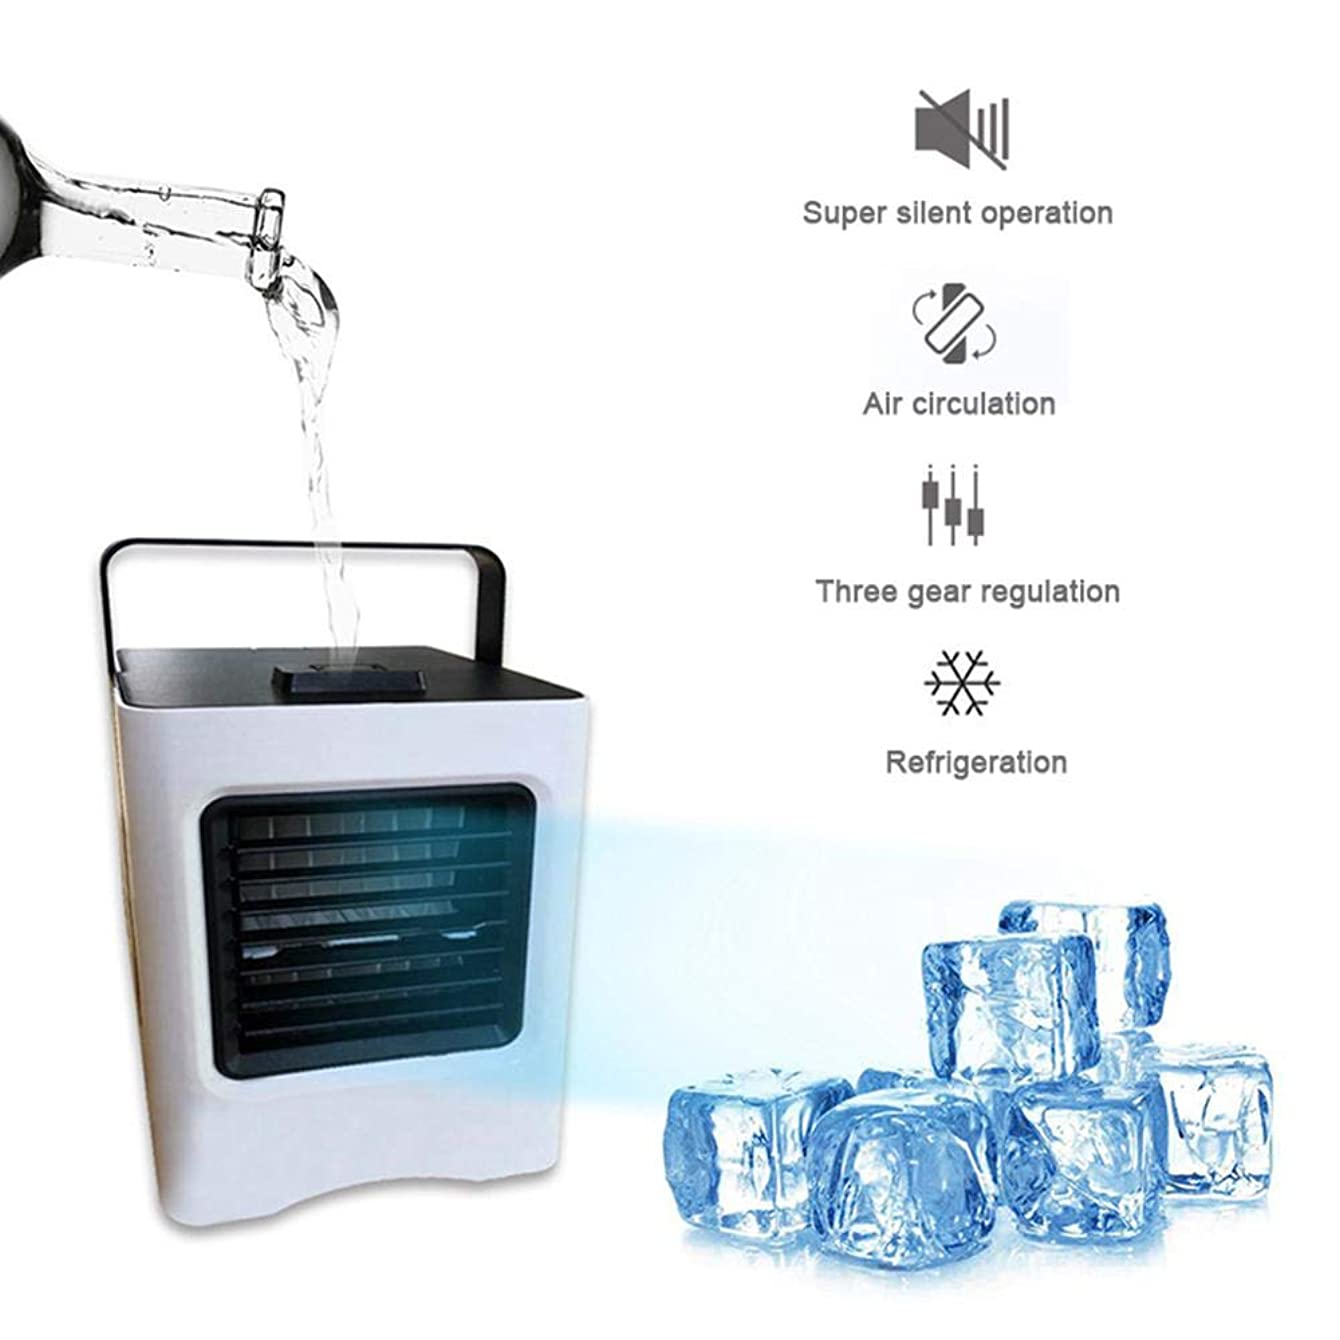 Mini Air Conditioner, Air Evaporative Cooler USB Portable Small Space Personal Ice Air Cooler Fan That Uses Water and Ice with Handle for Desktop, Dorm, Office, Bedroom, Apartment and More